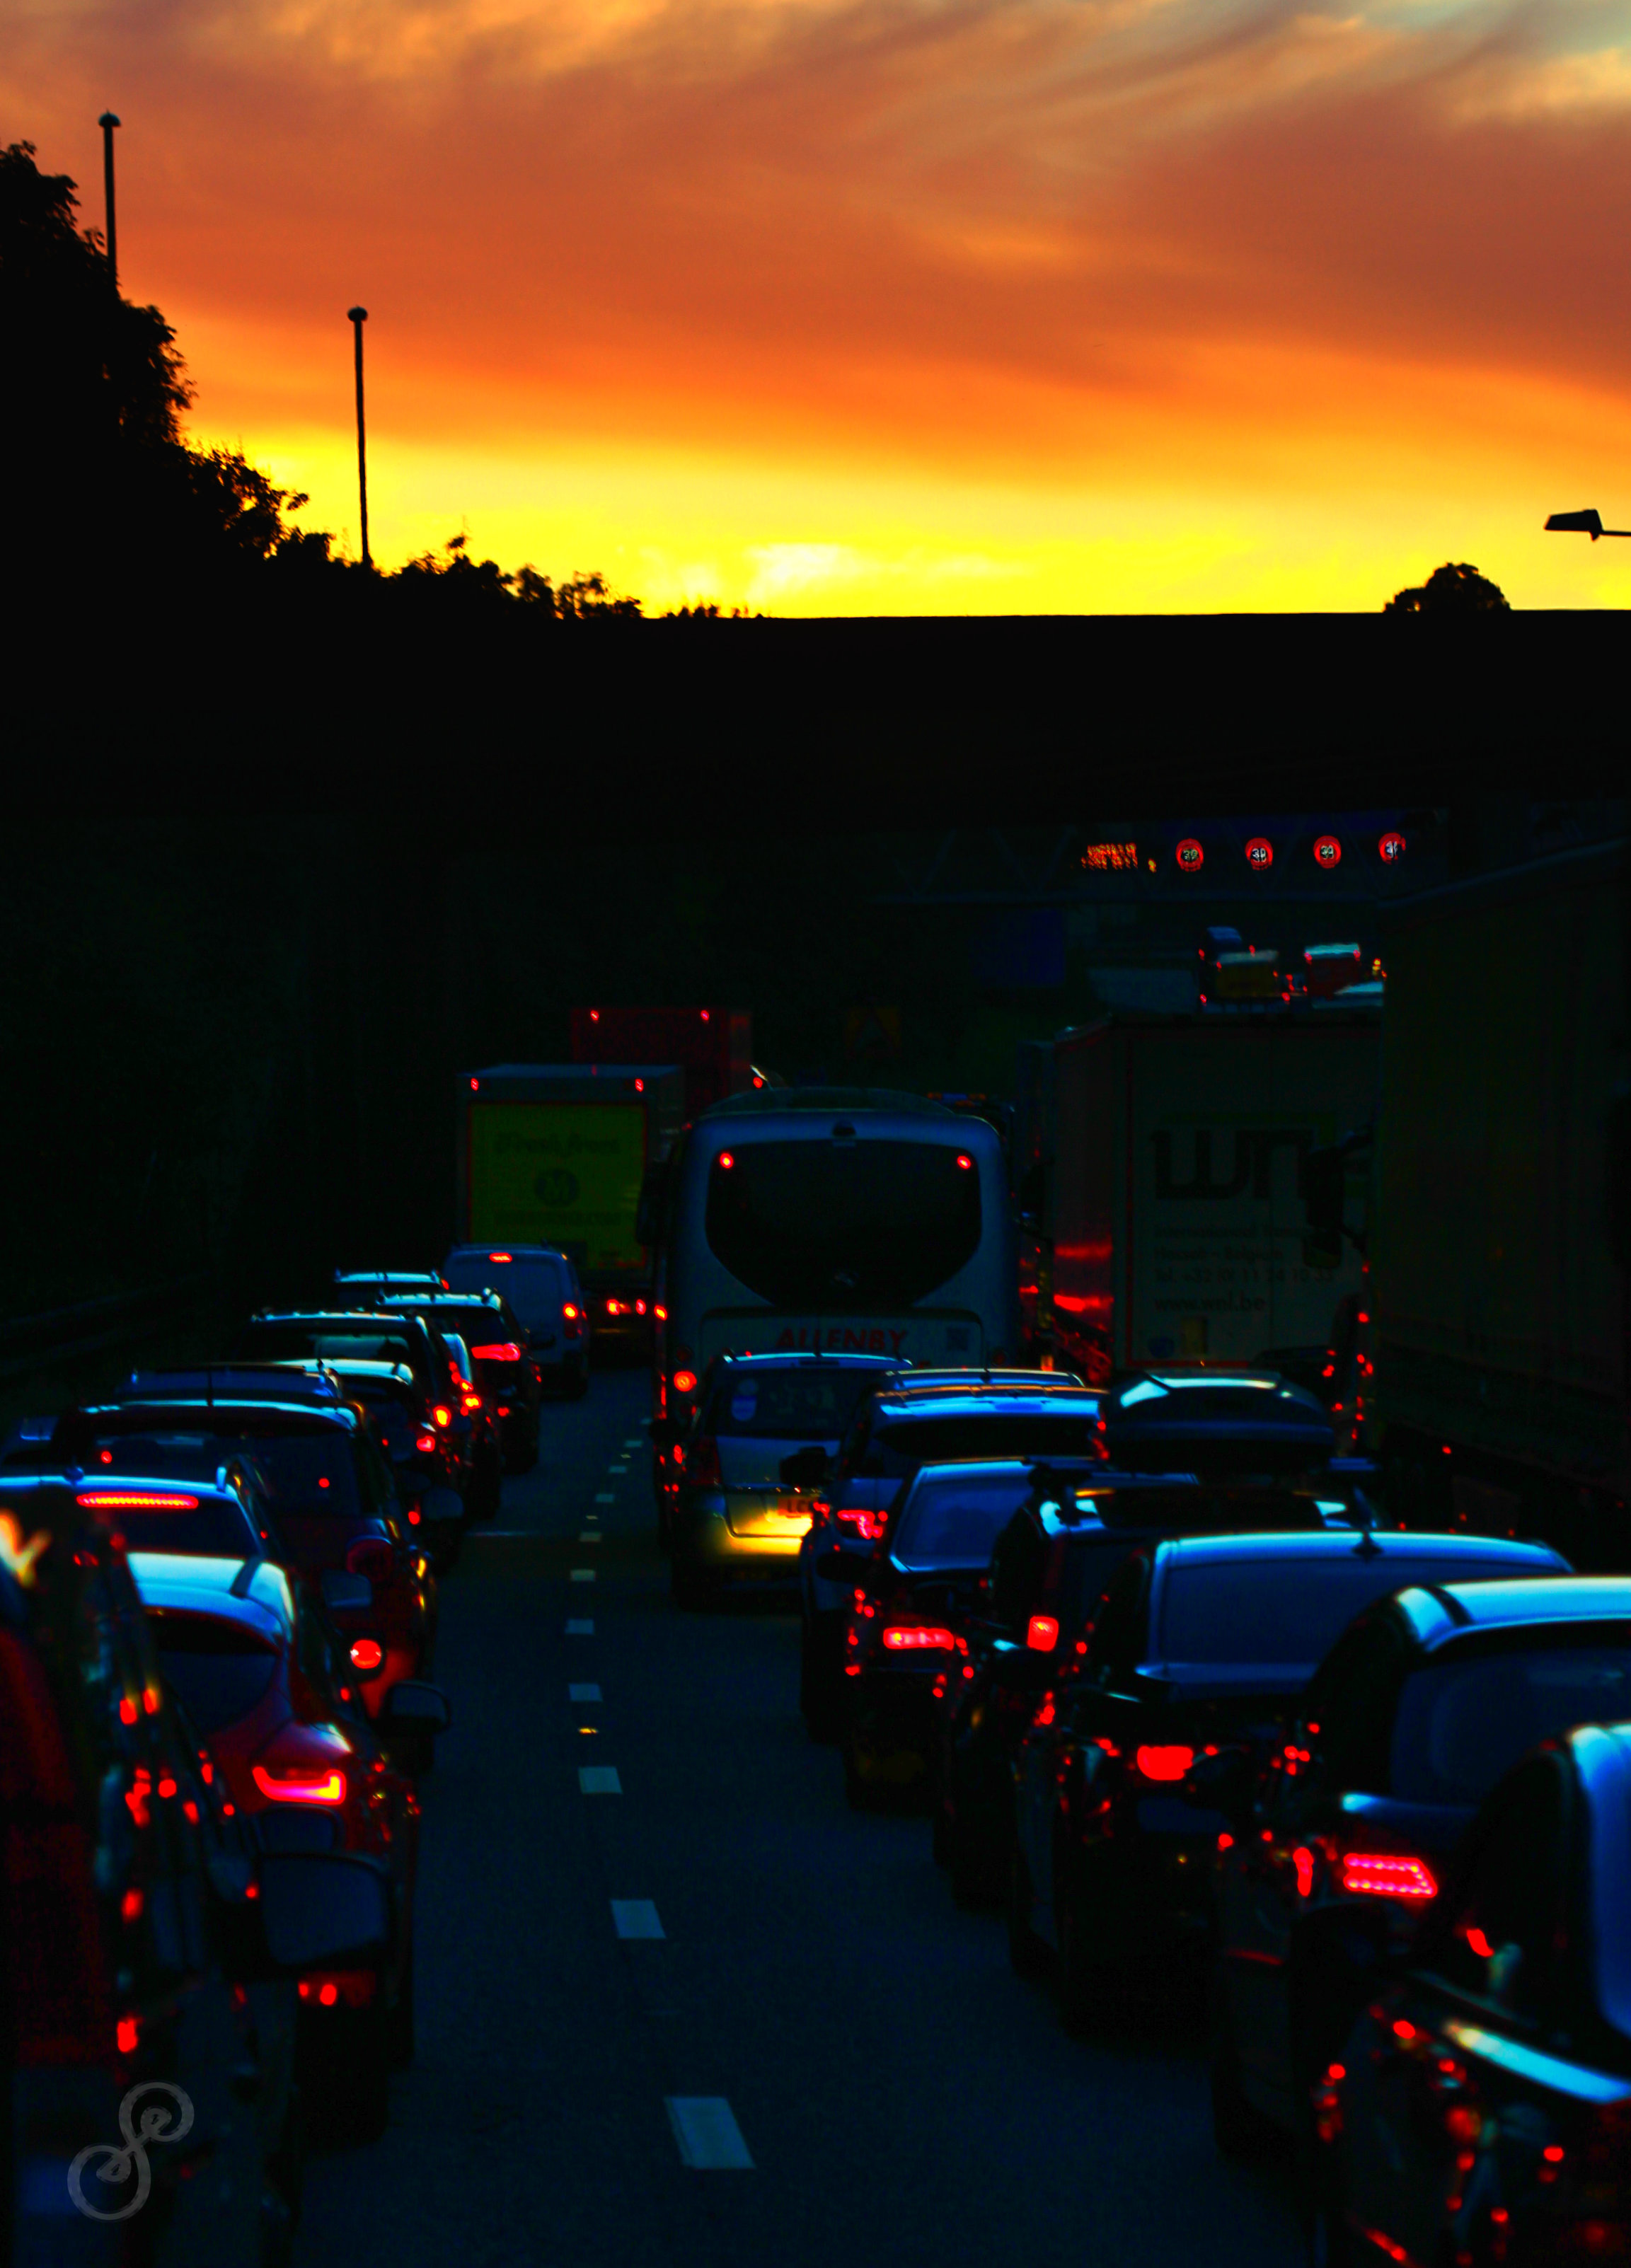 Cars queing at sunset on a motorway to get home